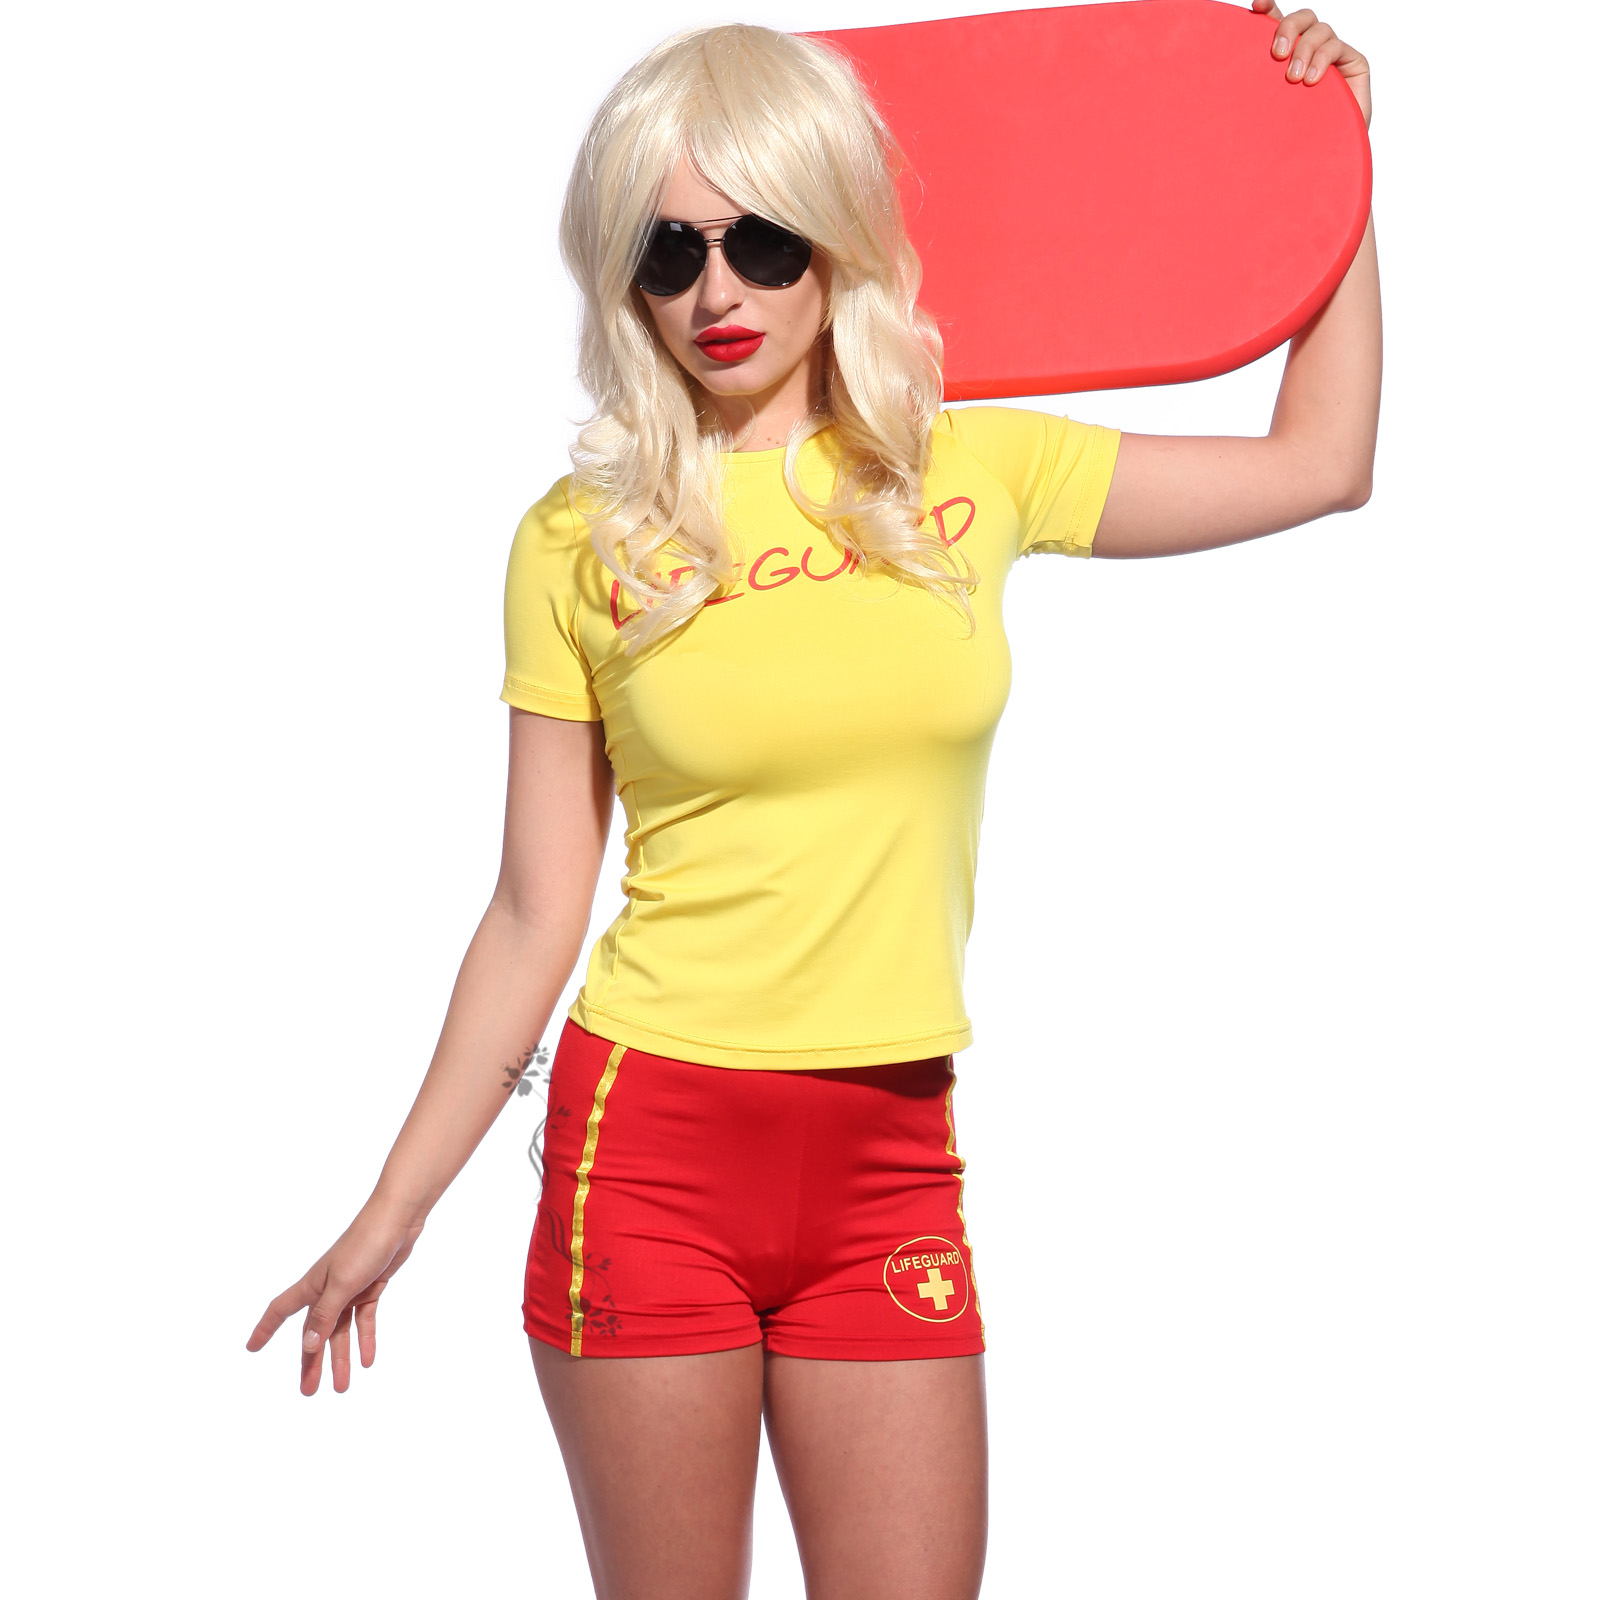 LIFEGUARD Ladies Yellow T-Shirt U0026 Red Shorts Fancy Dress Costume Outfit Set | EBay